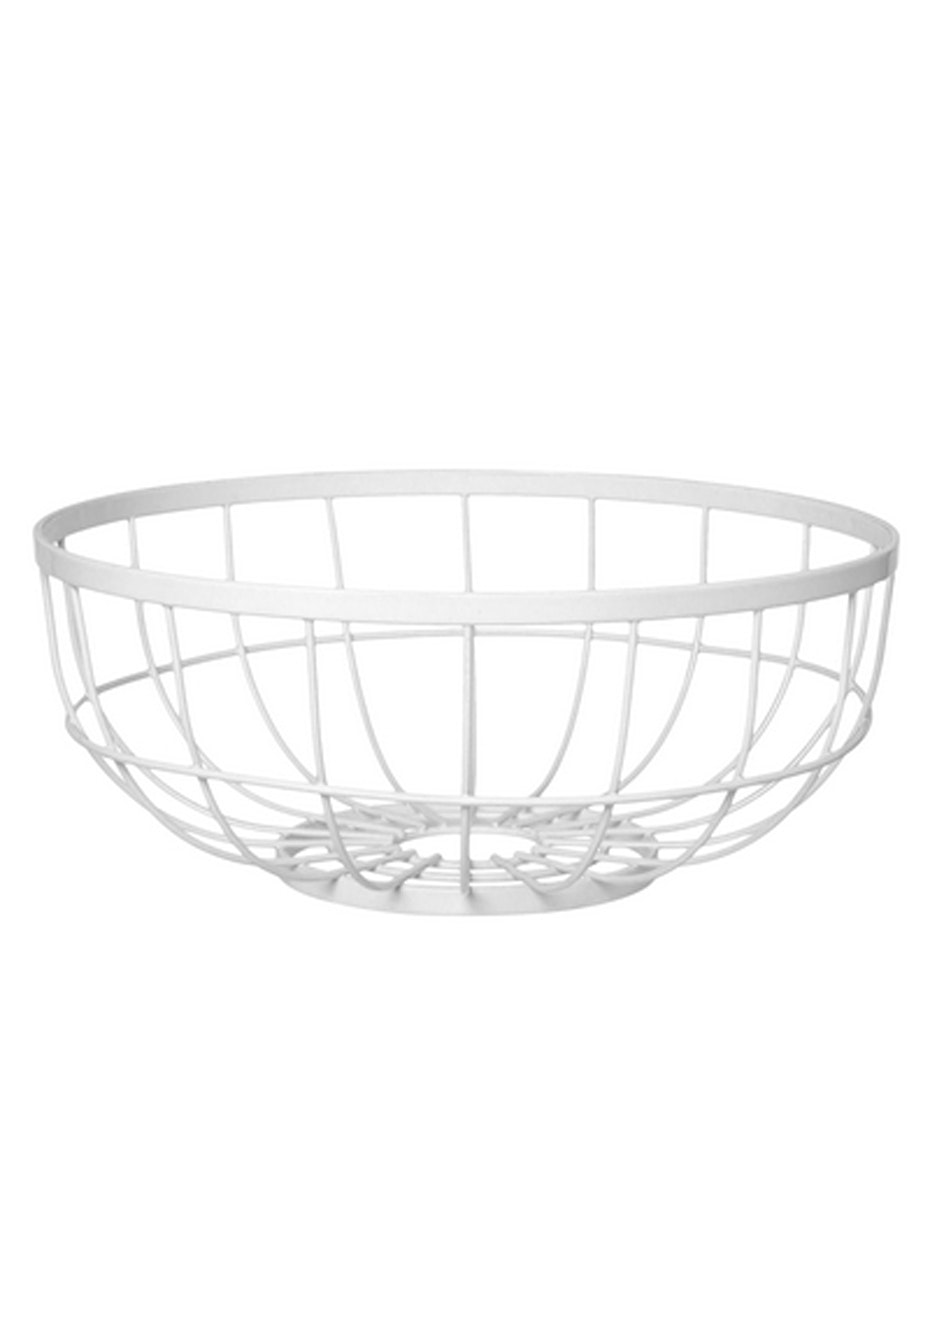 Pt Home - Fruit Bowl Open Grid - White